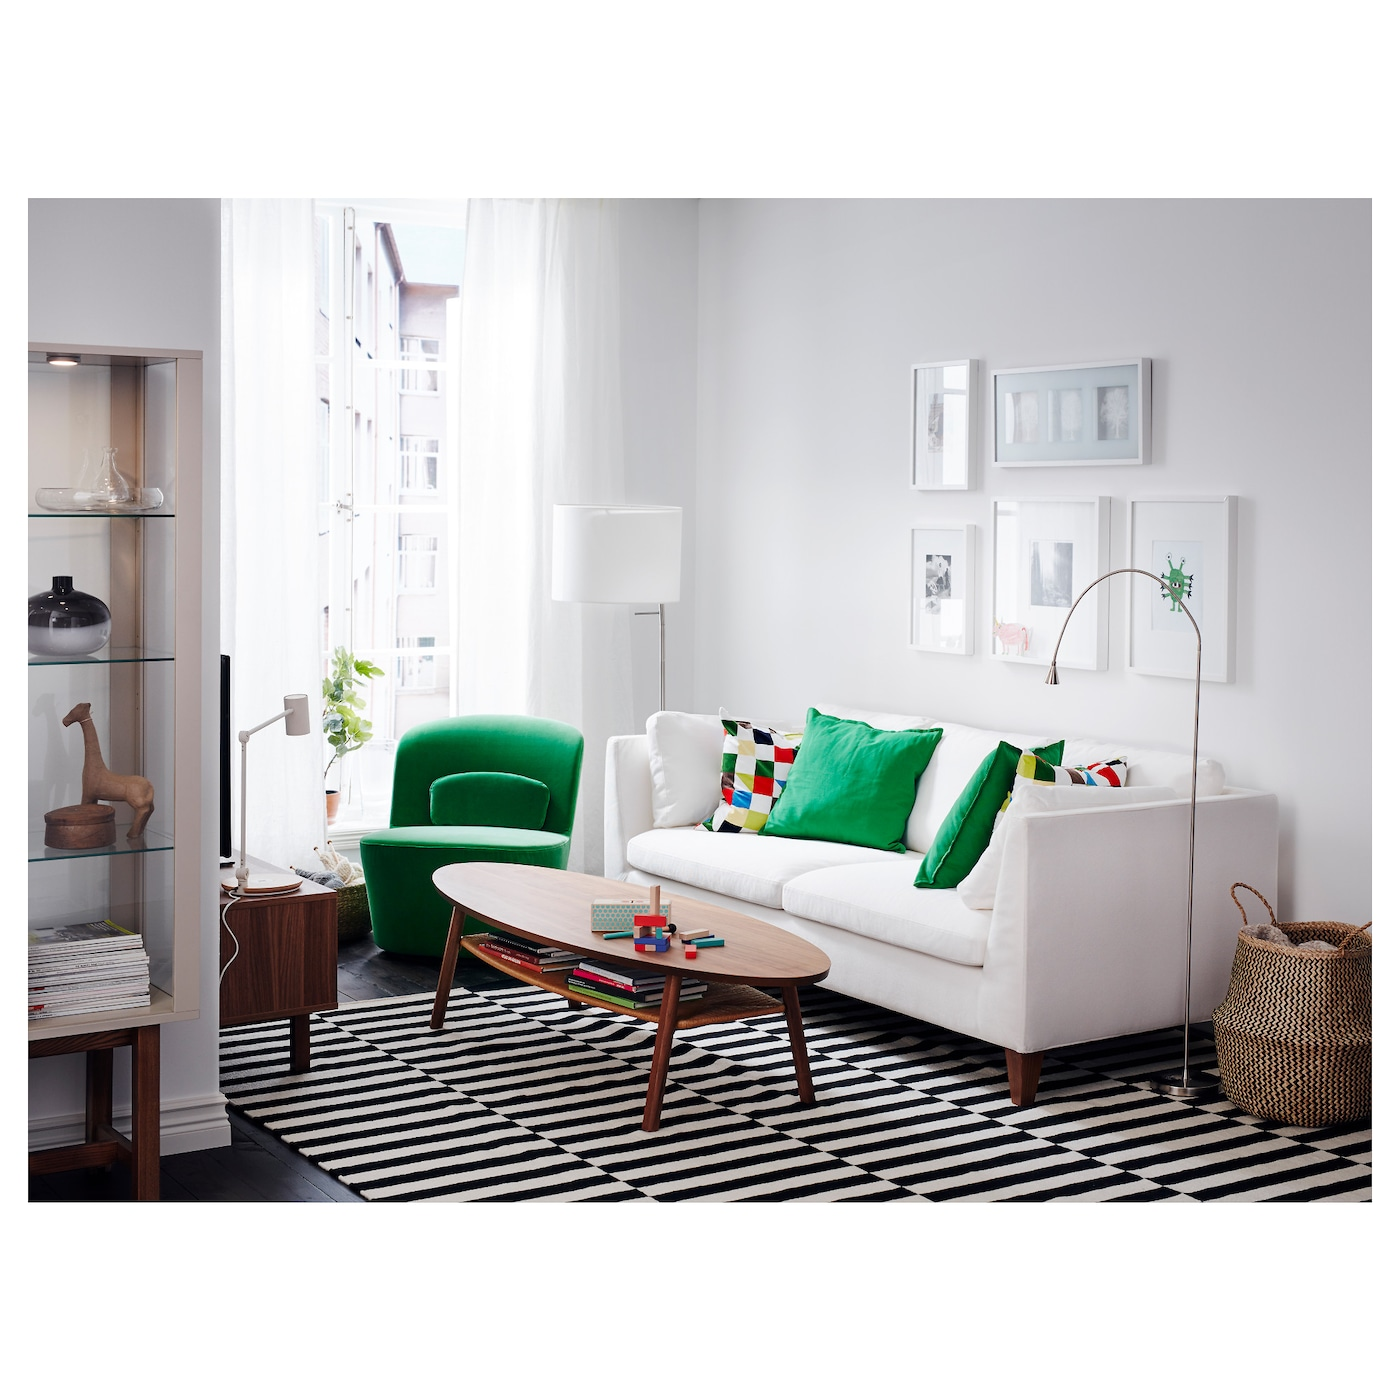 gurli cushion cover medium green 50x50 cm ikea. Black Bedroom Furniture Sets. Home Design Ideas